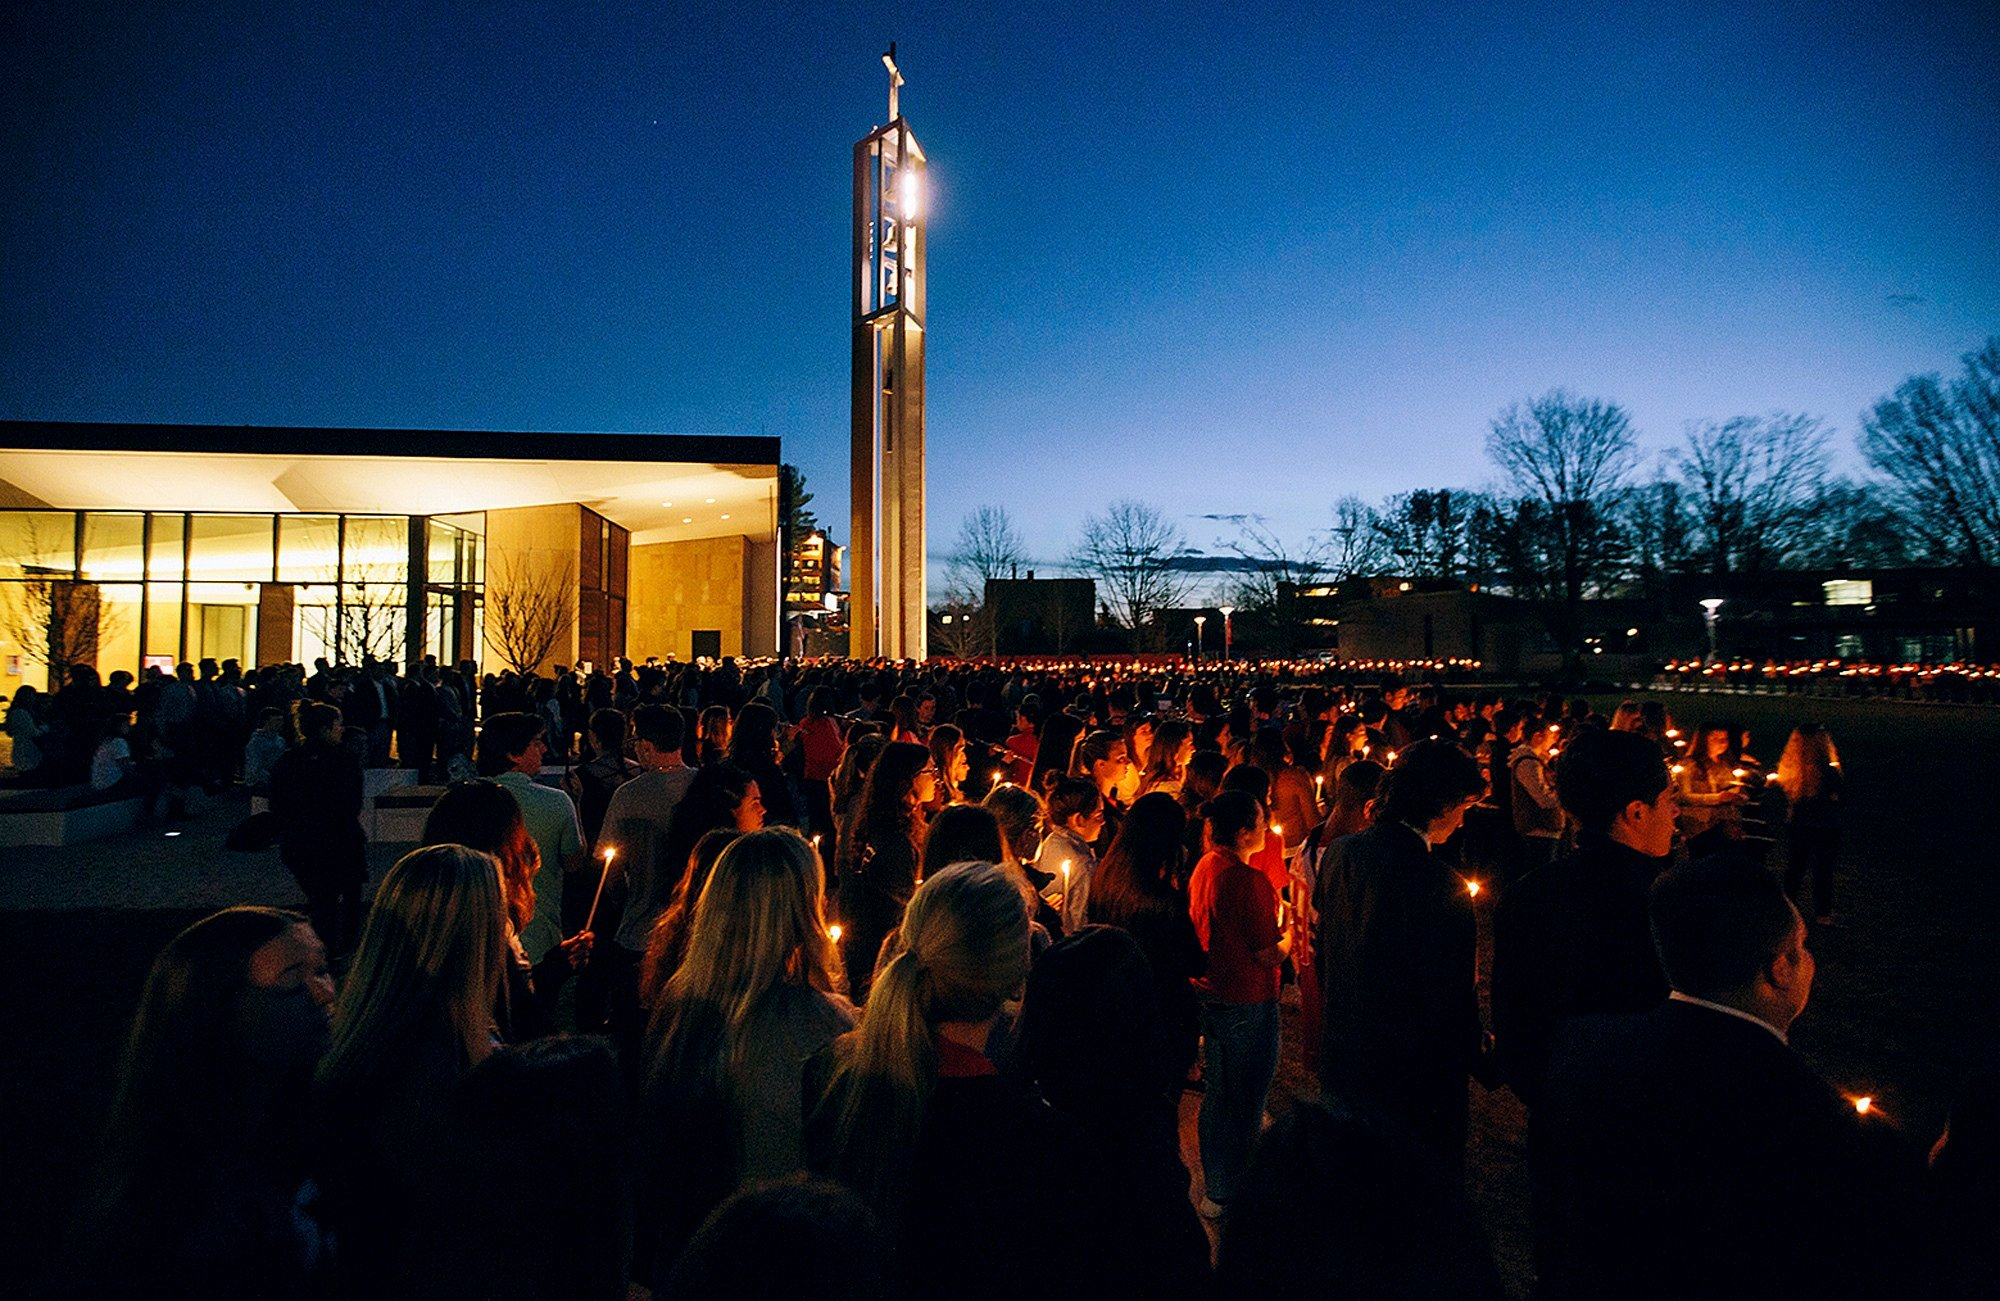 In this April 2, 2017 photo released by Sacred Heart University, students participate in a candlelight vigil in memory of student Caitlin Nelson on the school's campus in Fairfield, Conn. (Sean Kaschak/Sacred Heart University via AP)